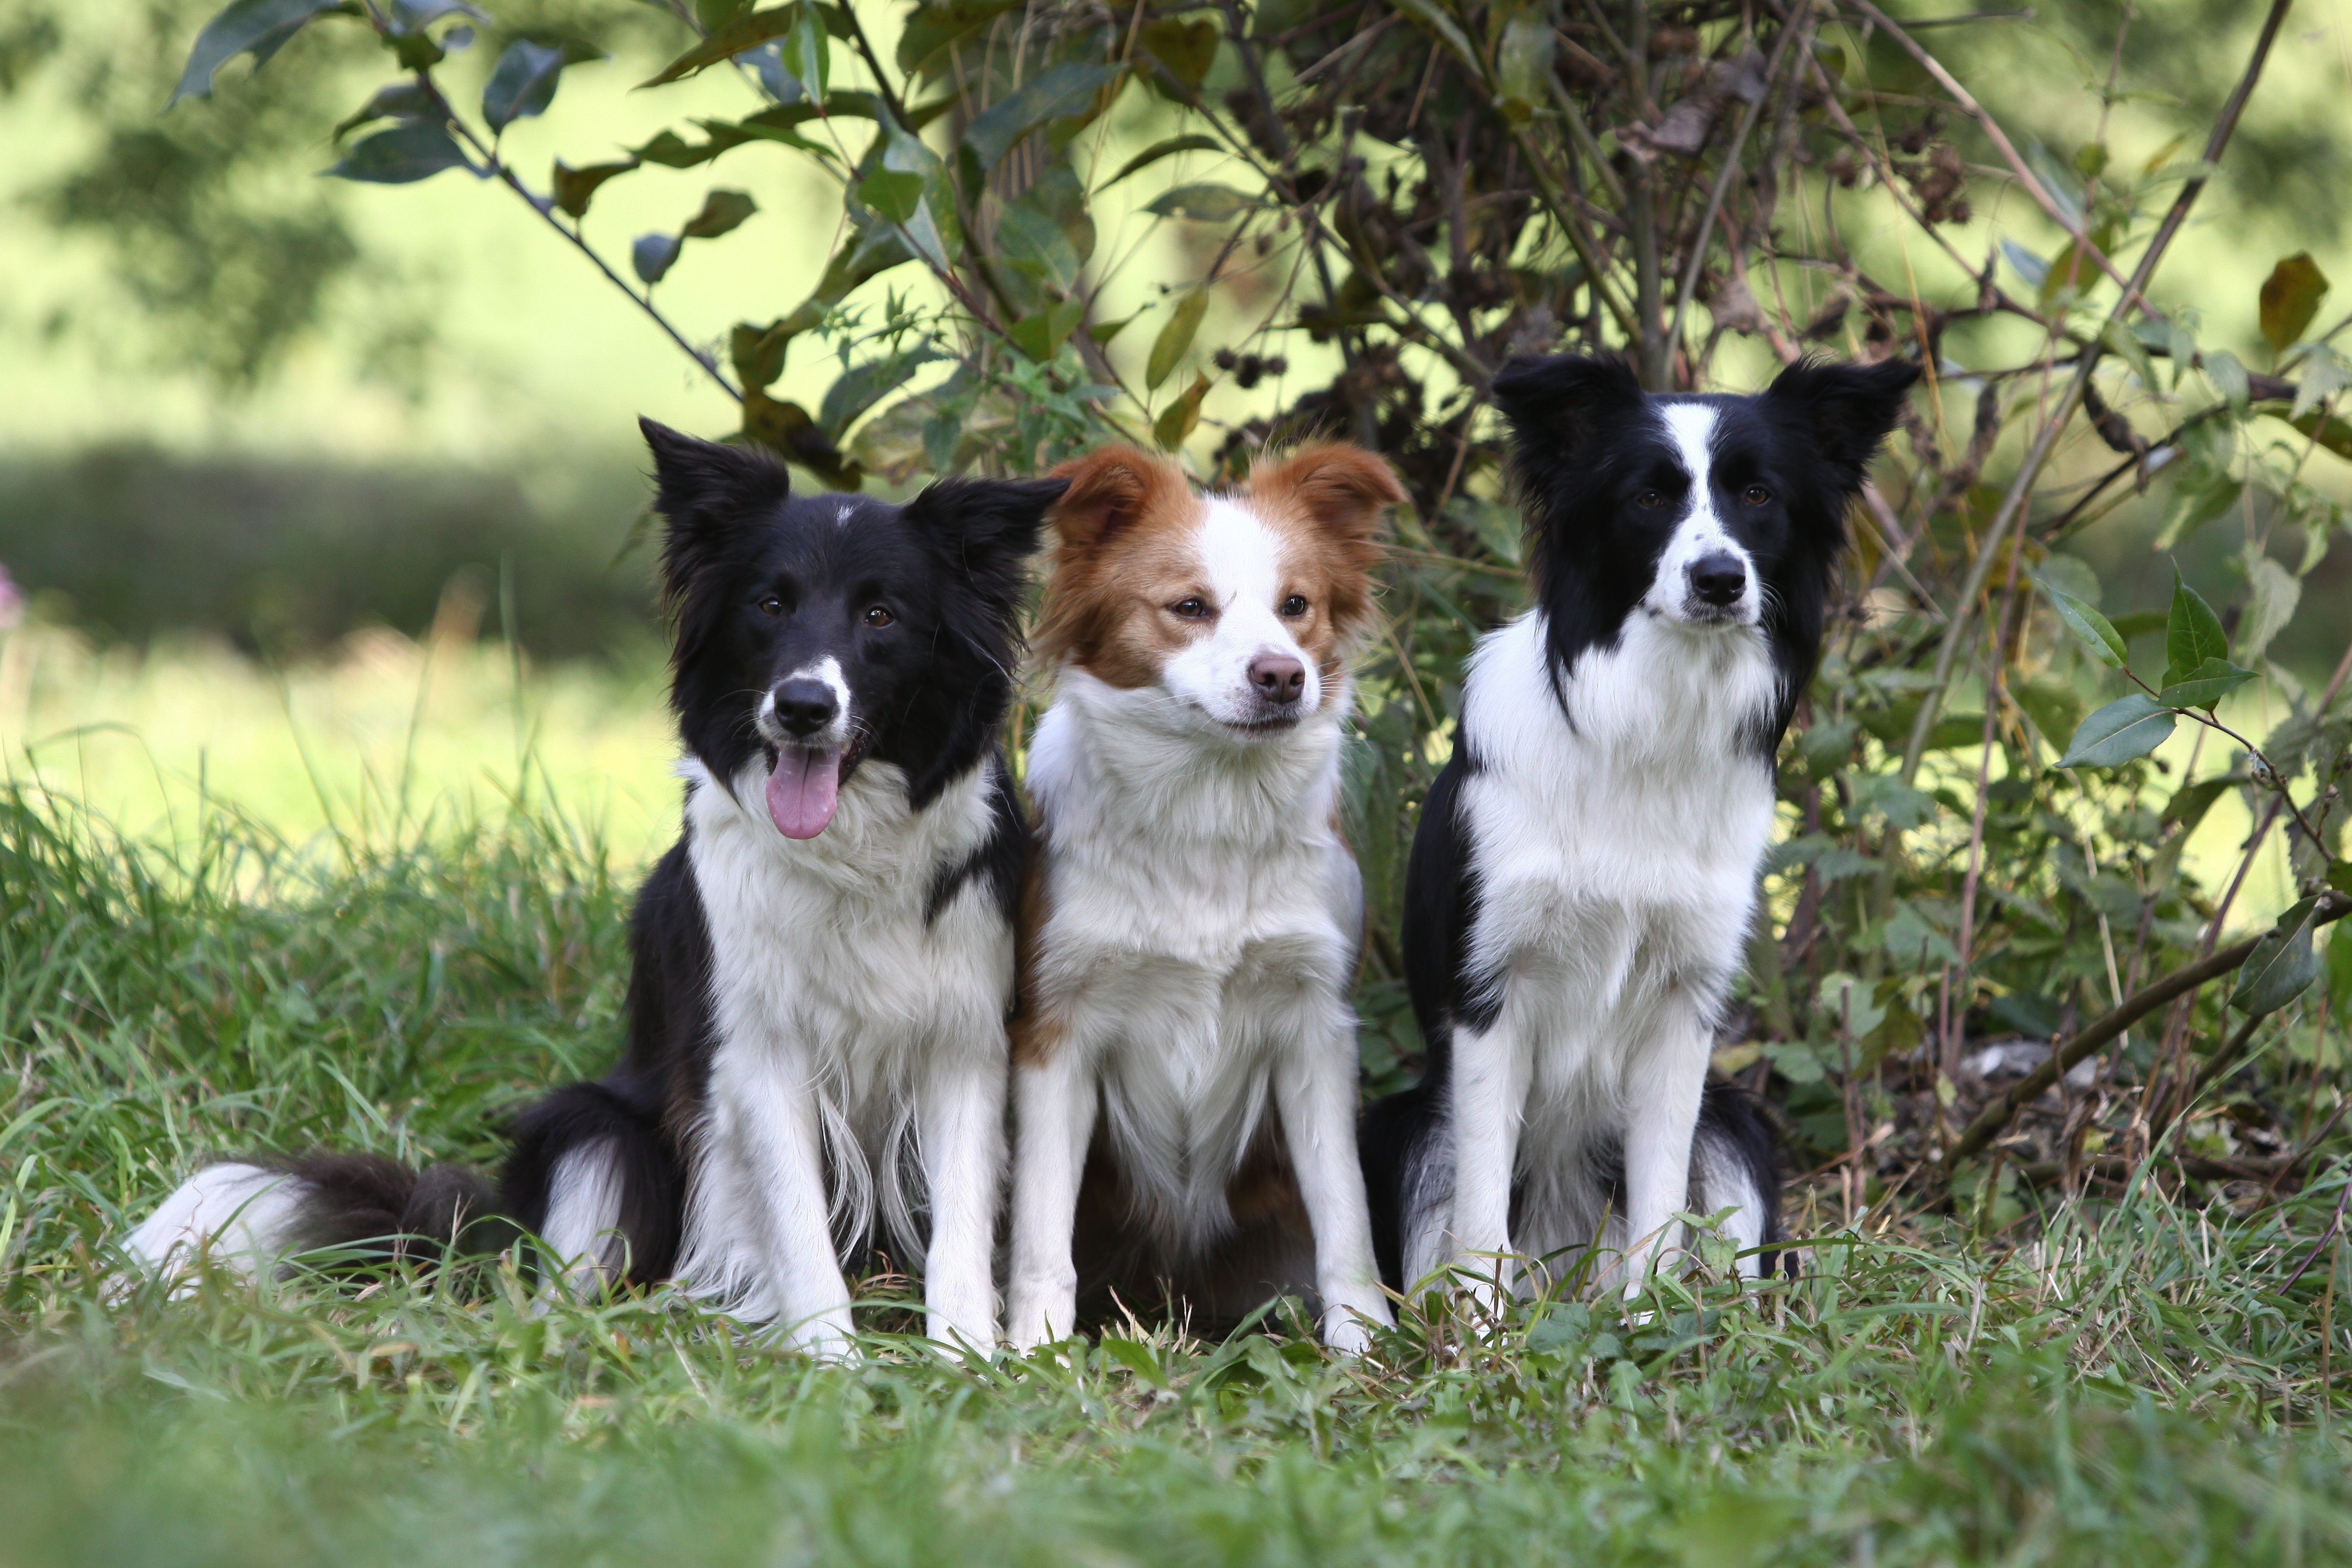 119051 download wallpaper Animals, Dogs, Grass, Sit, Wood, Tree, Branch, Bush, Three screensavers and pictures for free